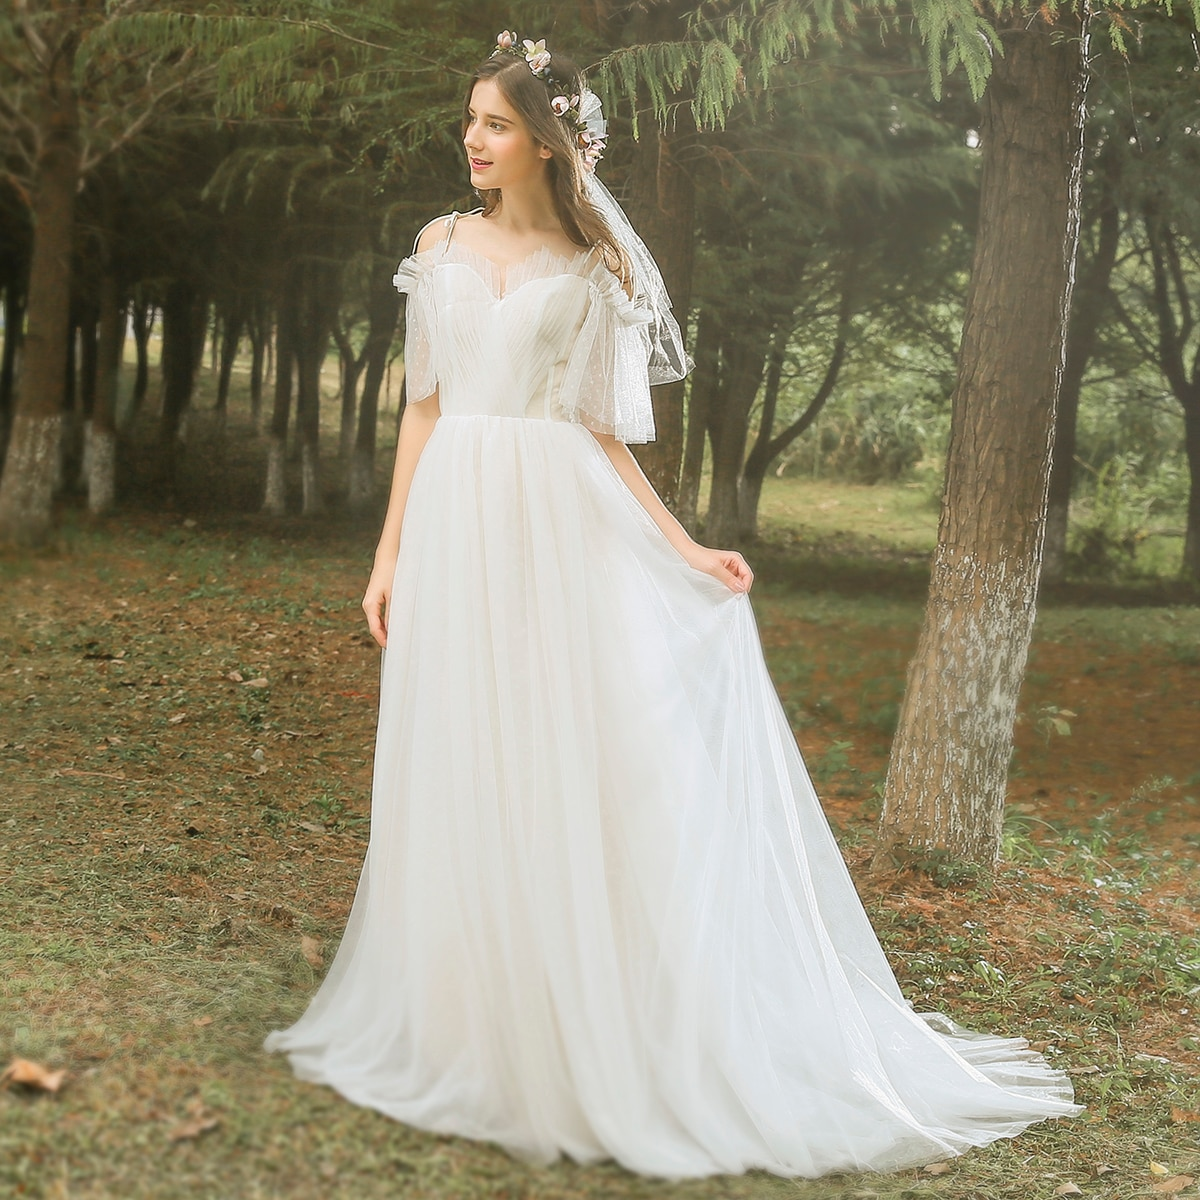 Review Polka Dots Sweetheart Wedding Dress Lace Up Lantern Sleeve Plus Size Real Photo Beach Woodland 2021 Photoshoot Bridal Gown 1000#